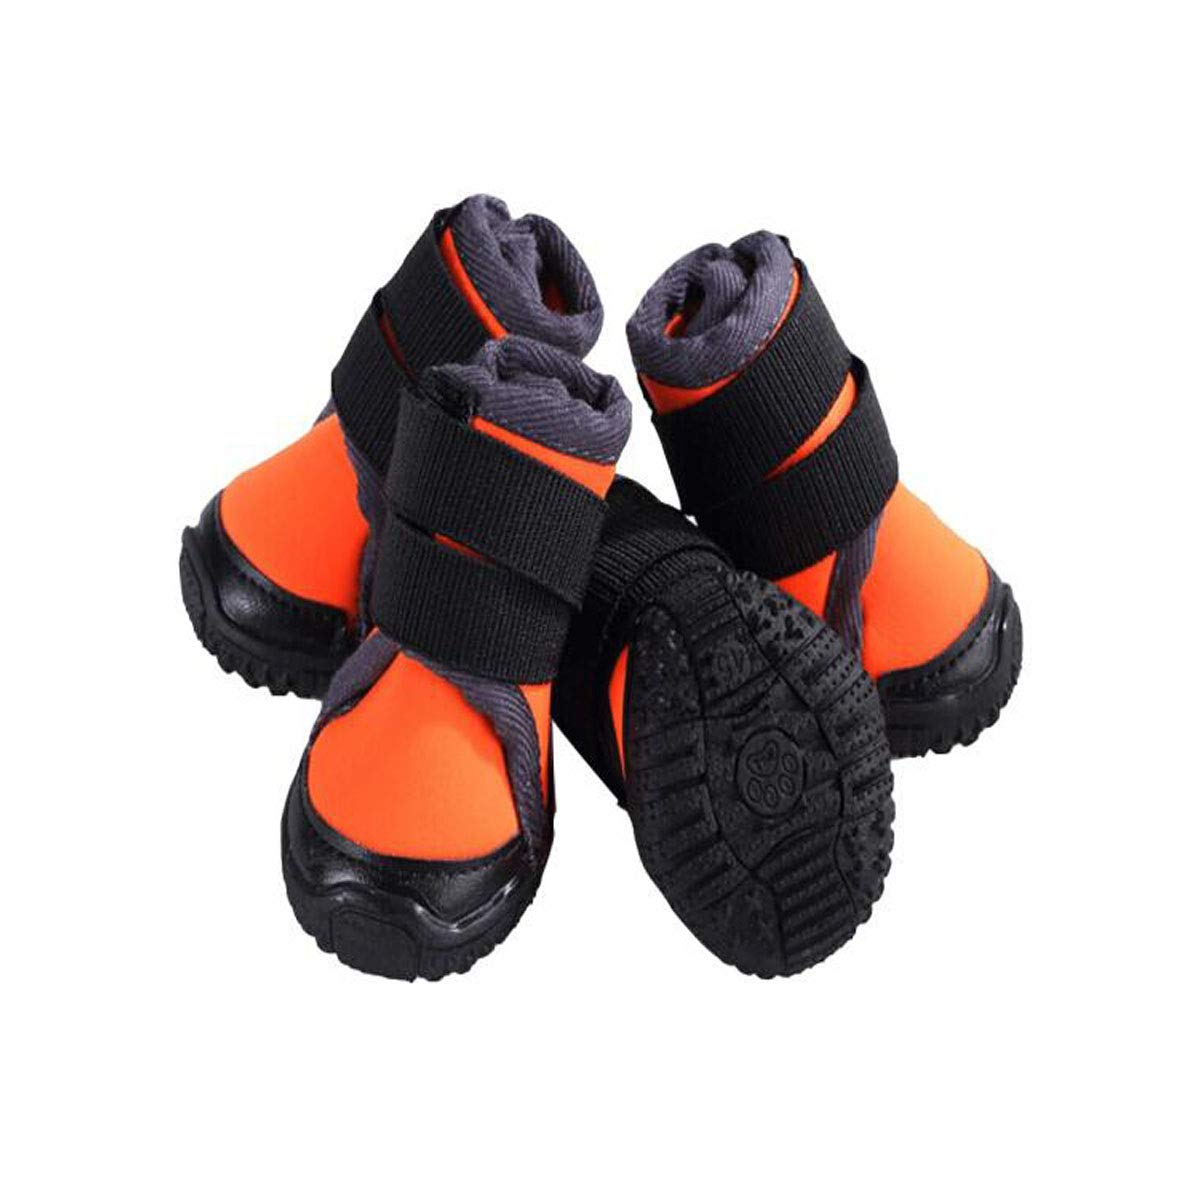 orange 50  orange 50  Jingfeng Waterproof Non-Slip Hiking Out Pet shoes, Medium and Large Dogs Plus Velvet Warm, Red 45 Yards Beautiful (color   orange, Size   50 )